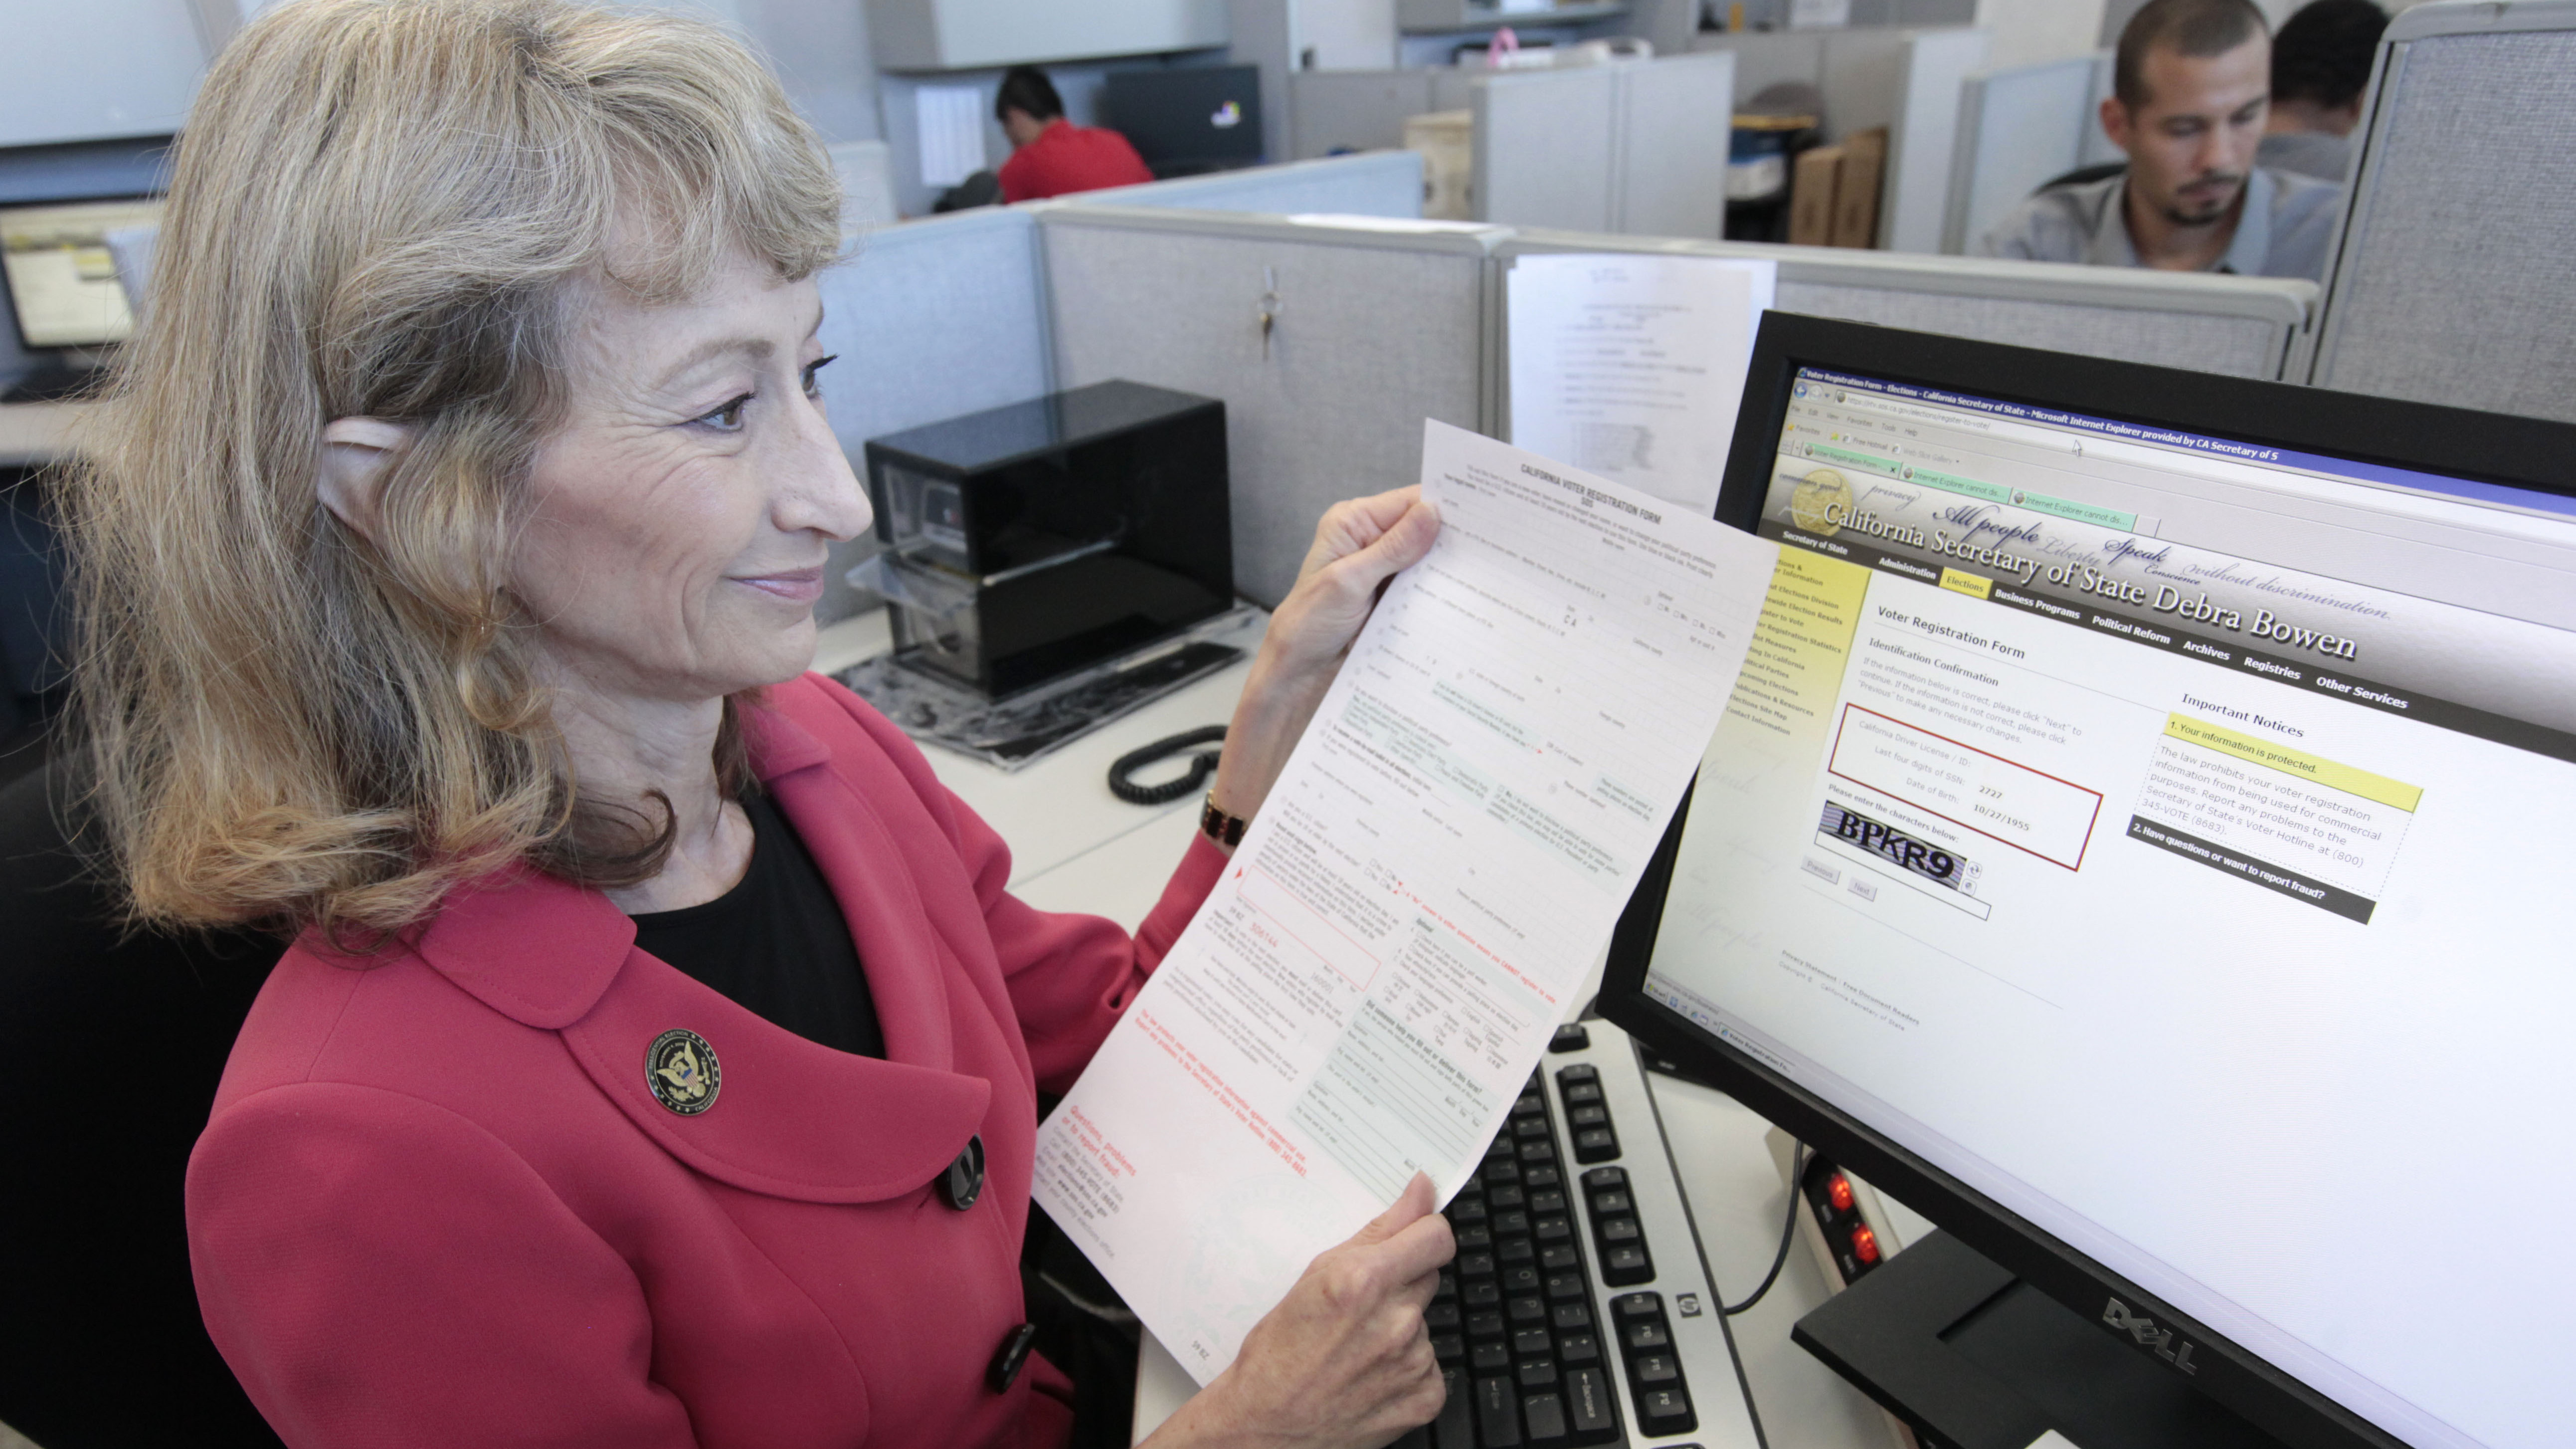 Debra Bowen, then California secretary of state, demonstrates the state's online voter registration system when it was launched in 2012. Voters can also still register using a paper form. Rich Pedroncelli/AP